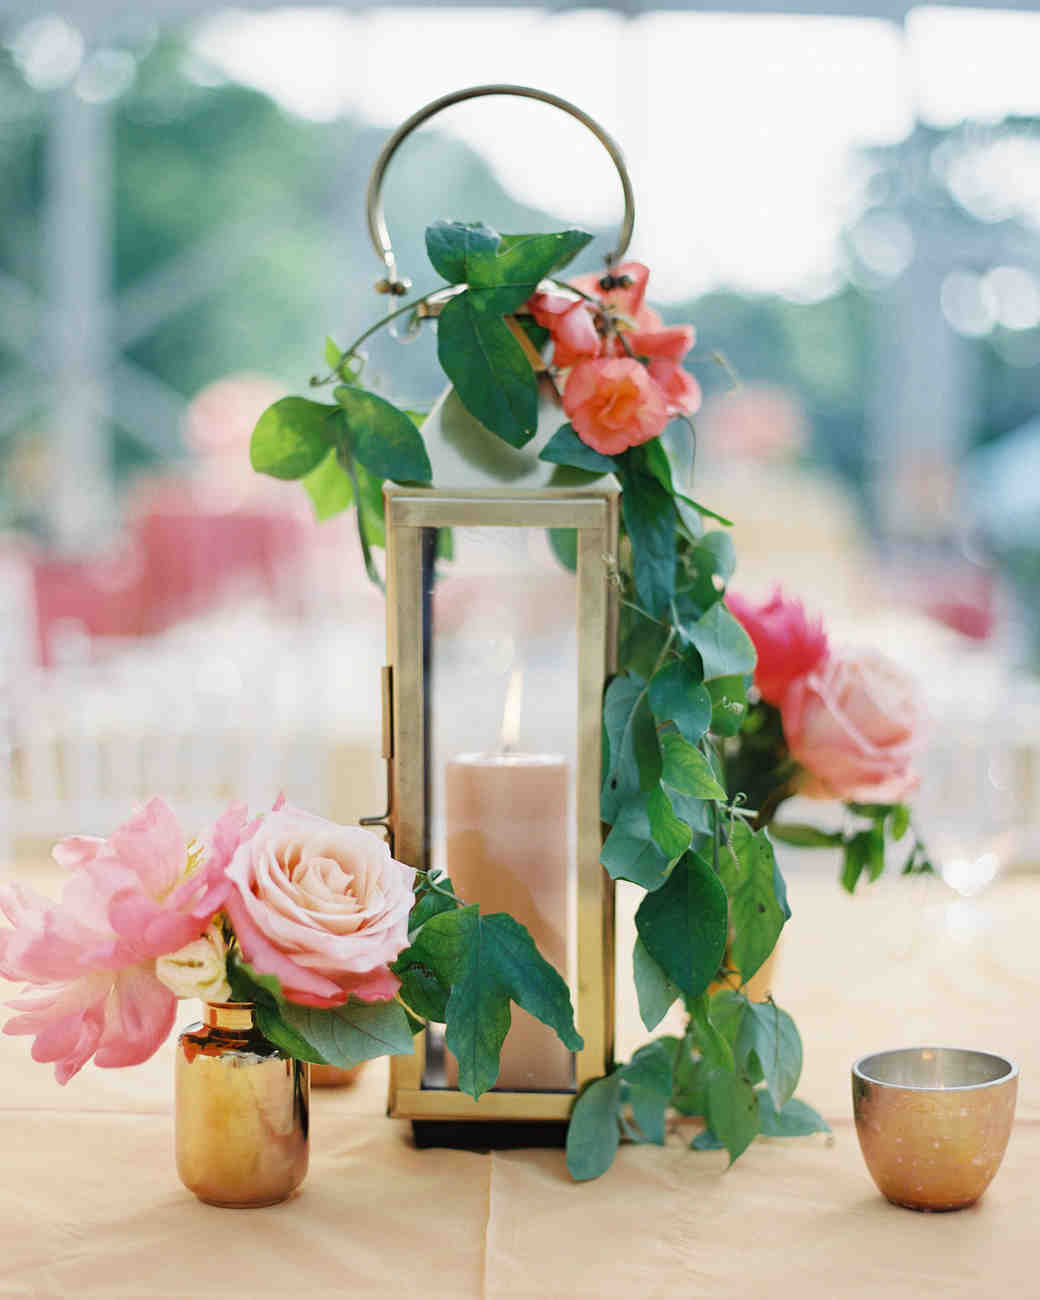 Candle And Flowers Centerpieces Best Candle Wedding Centerpieces Ideas On Simple Centerpieces Simple Wedding Centerpieces And Votive Centerpieces Floating Candle Flower Vases Candle Centerpieces with Round Glass Garnished with Leaves - 28 Round Table Centerpieces (in Different Styles) - EverAfterGuide candle centerpieces for 4 circular tables.